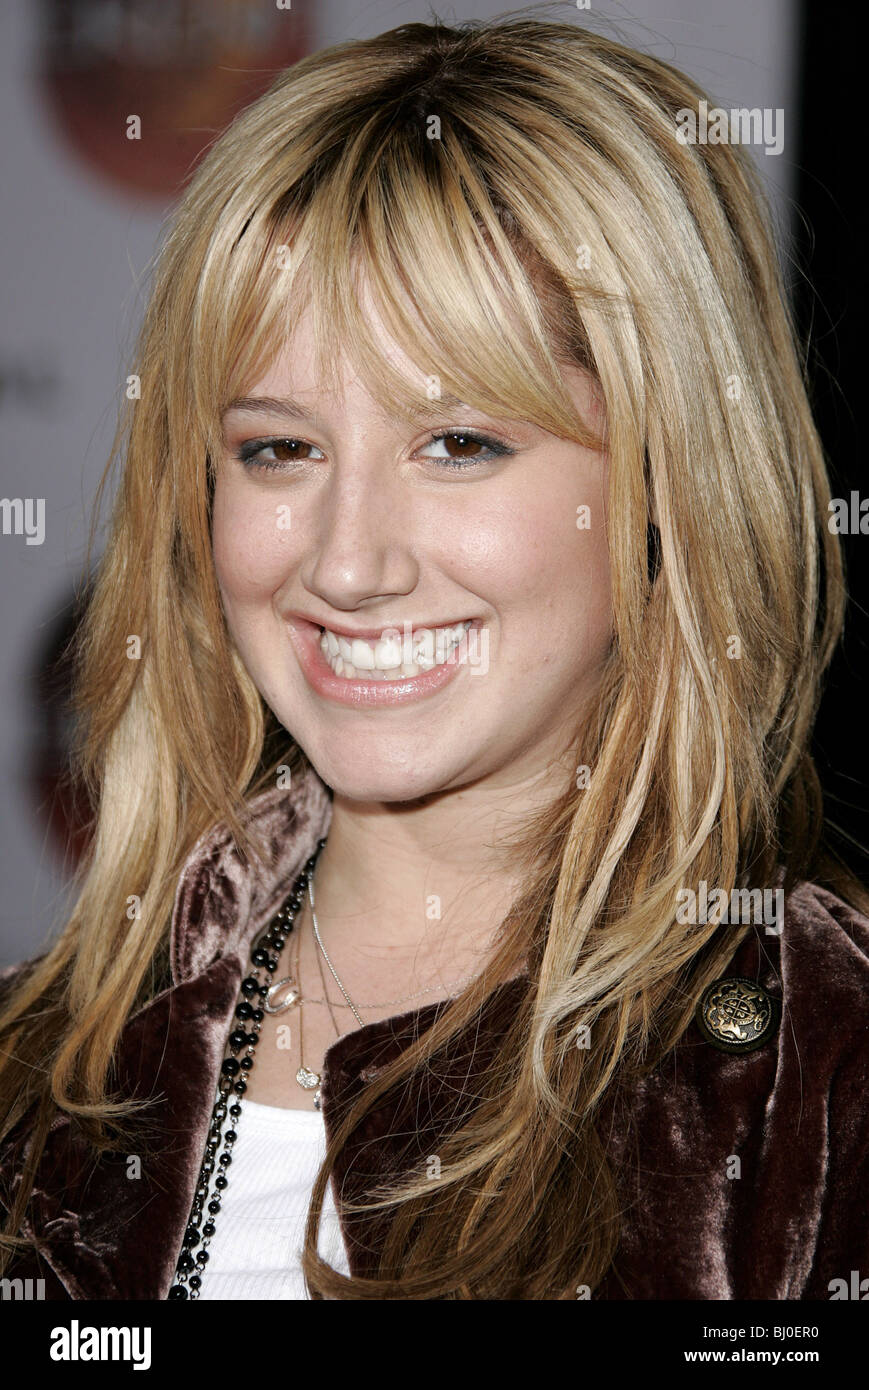 Join. ashley tisdale nakna bild usual reserve